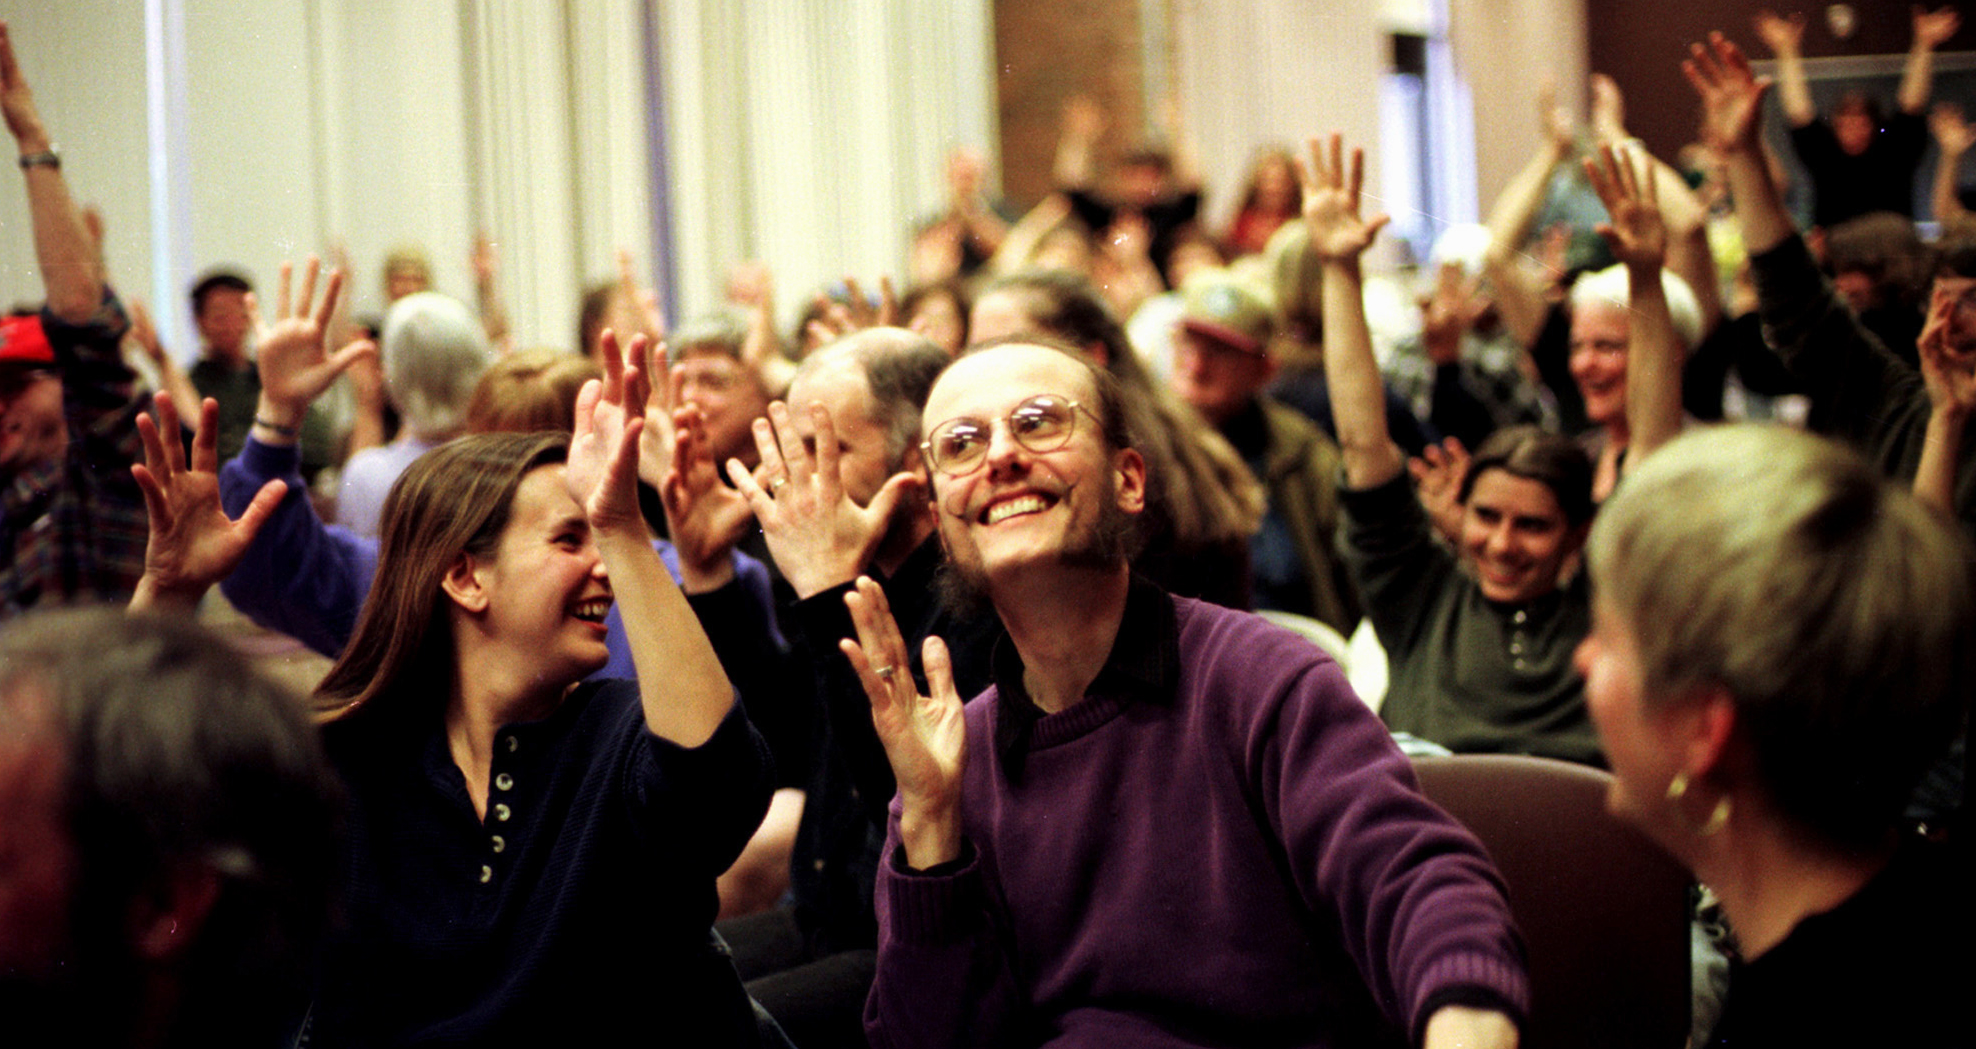 Robert J. Steppler (center) who is deaf-blind joins other people and their interpreters in applause at one of the deaf-blind community classes held biweekly.  In the hearing culture, people clap to give applause. In the deaf culture people wave their hands in the air, and in the deaf-blind culture people wave their hands and stomp their feet to create vibrations.